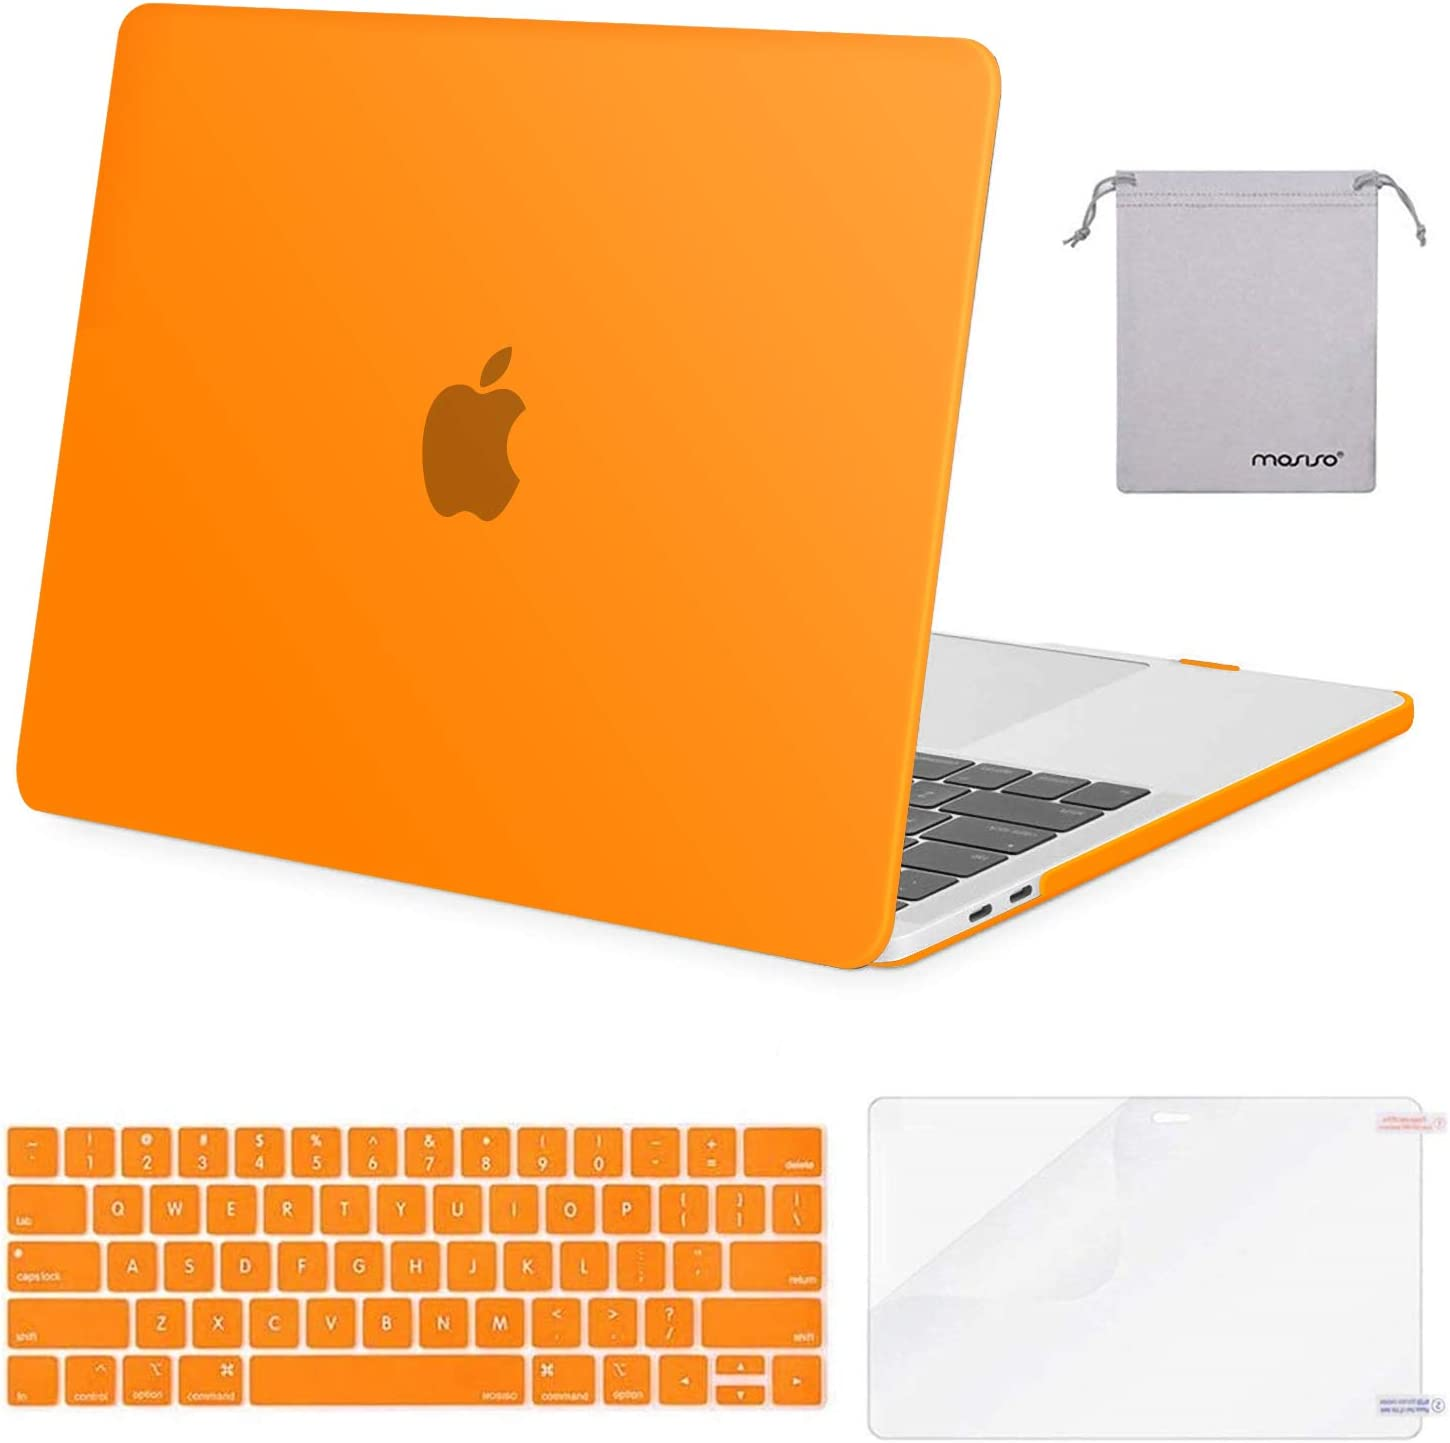 MOSISO MacBook Pro 13 inch Case 2019 2018 2017 2016 Release A2159 A1989 A1706 A1708, Plastic Hard Case&Keyboard Cover&Screen Protector&Storage Bag Compatible with MacBook Pro 13 inch, Orange